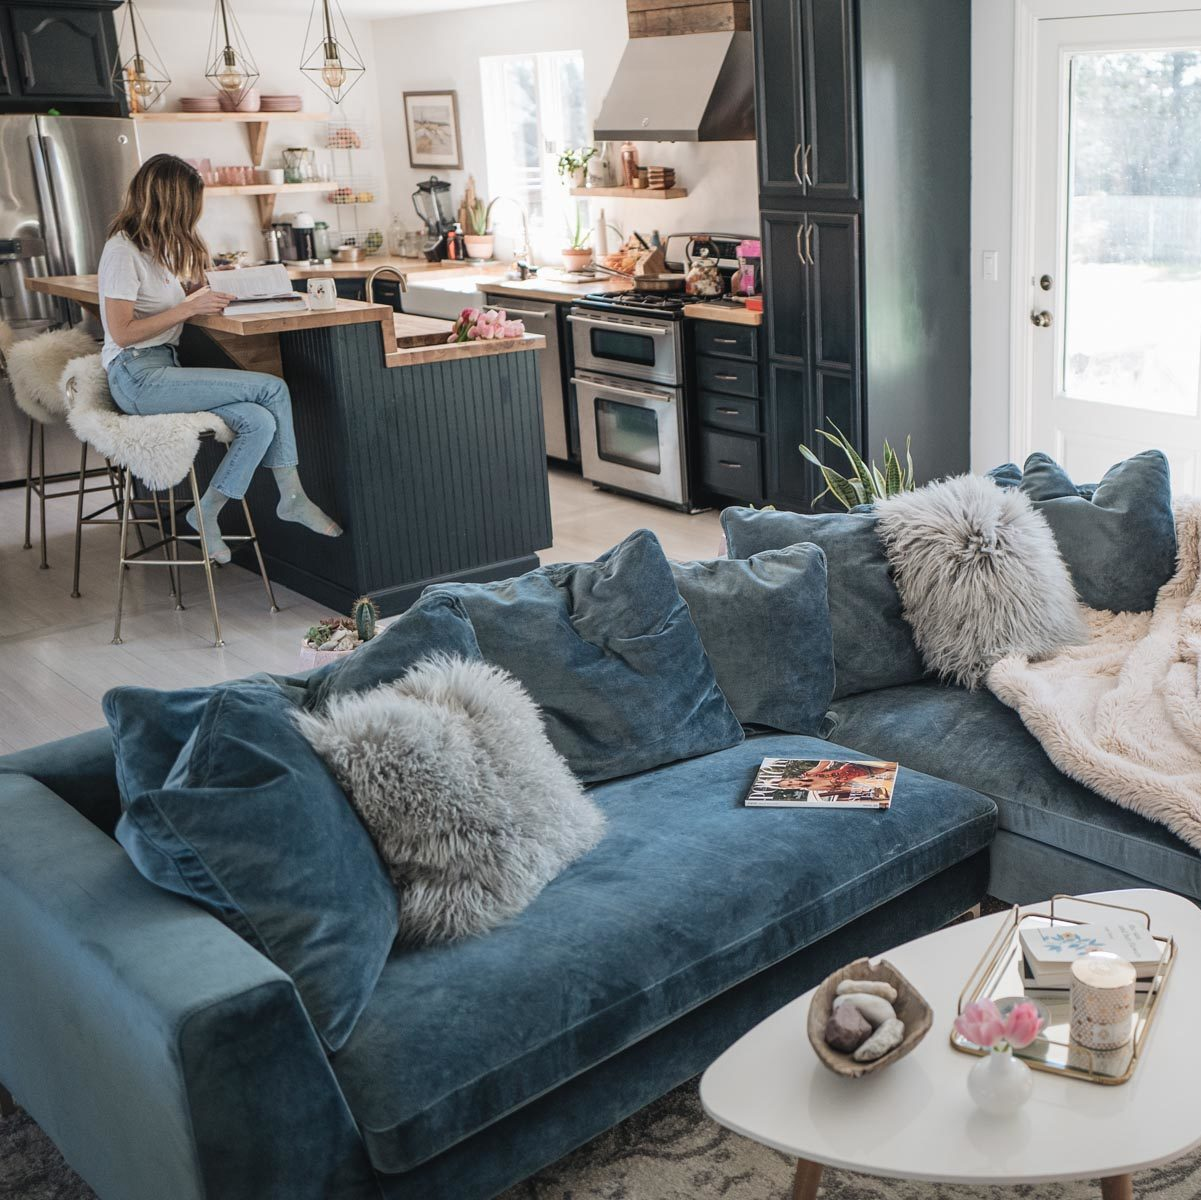 Jess Ann Kirby reveals her living room renovation featuring a velvet sectional sofa